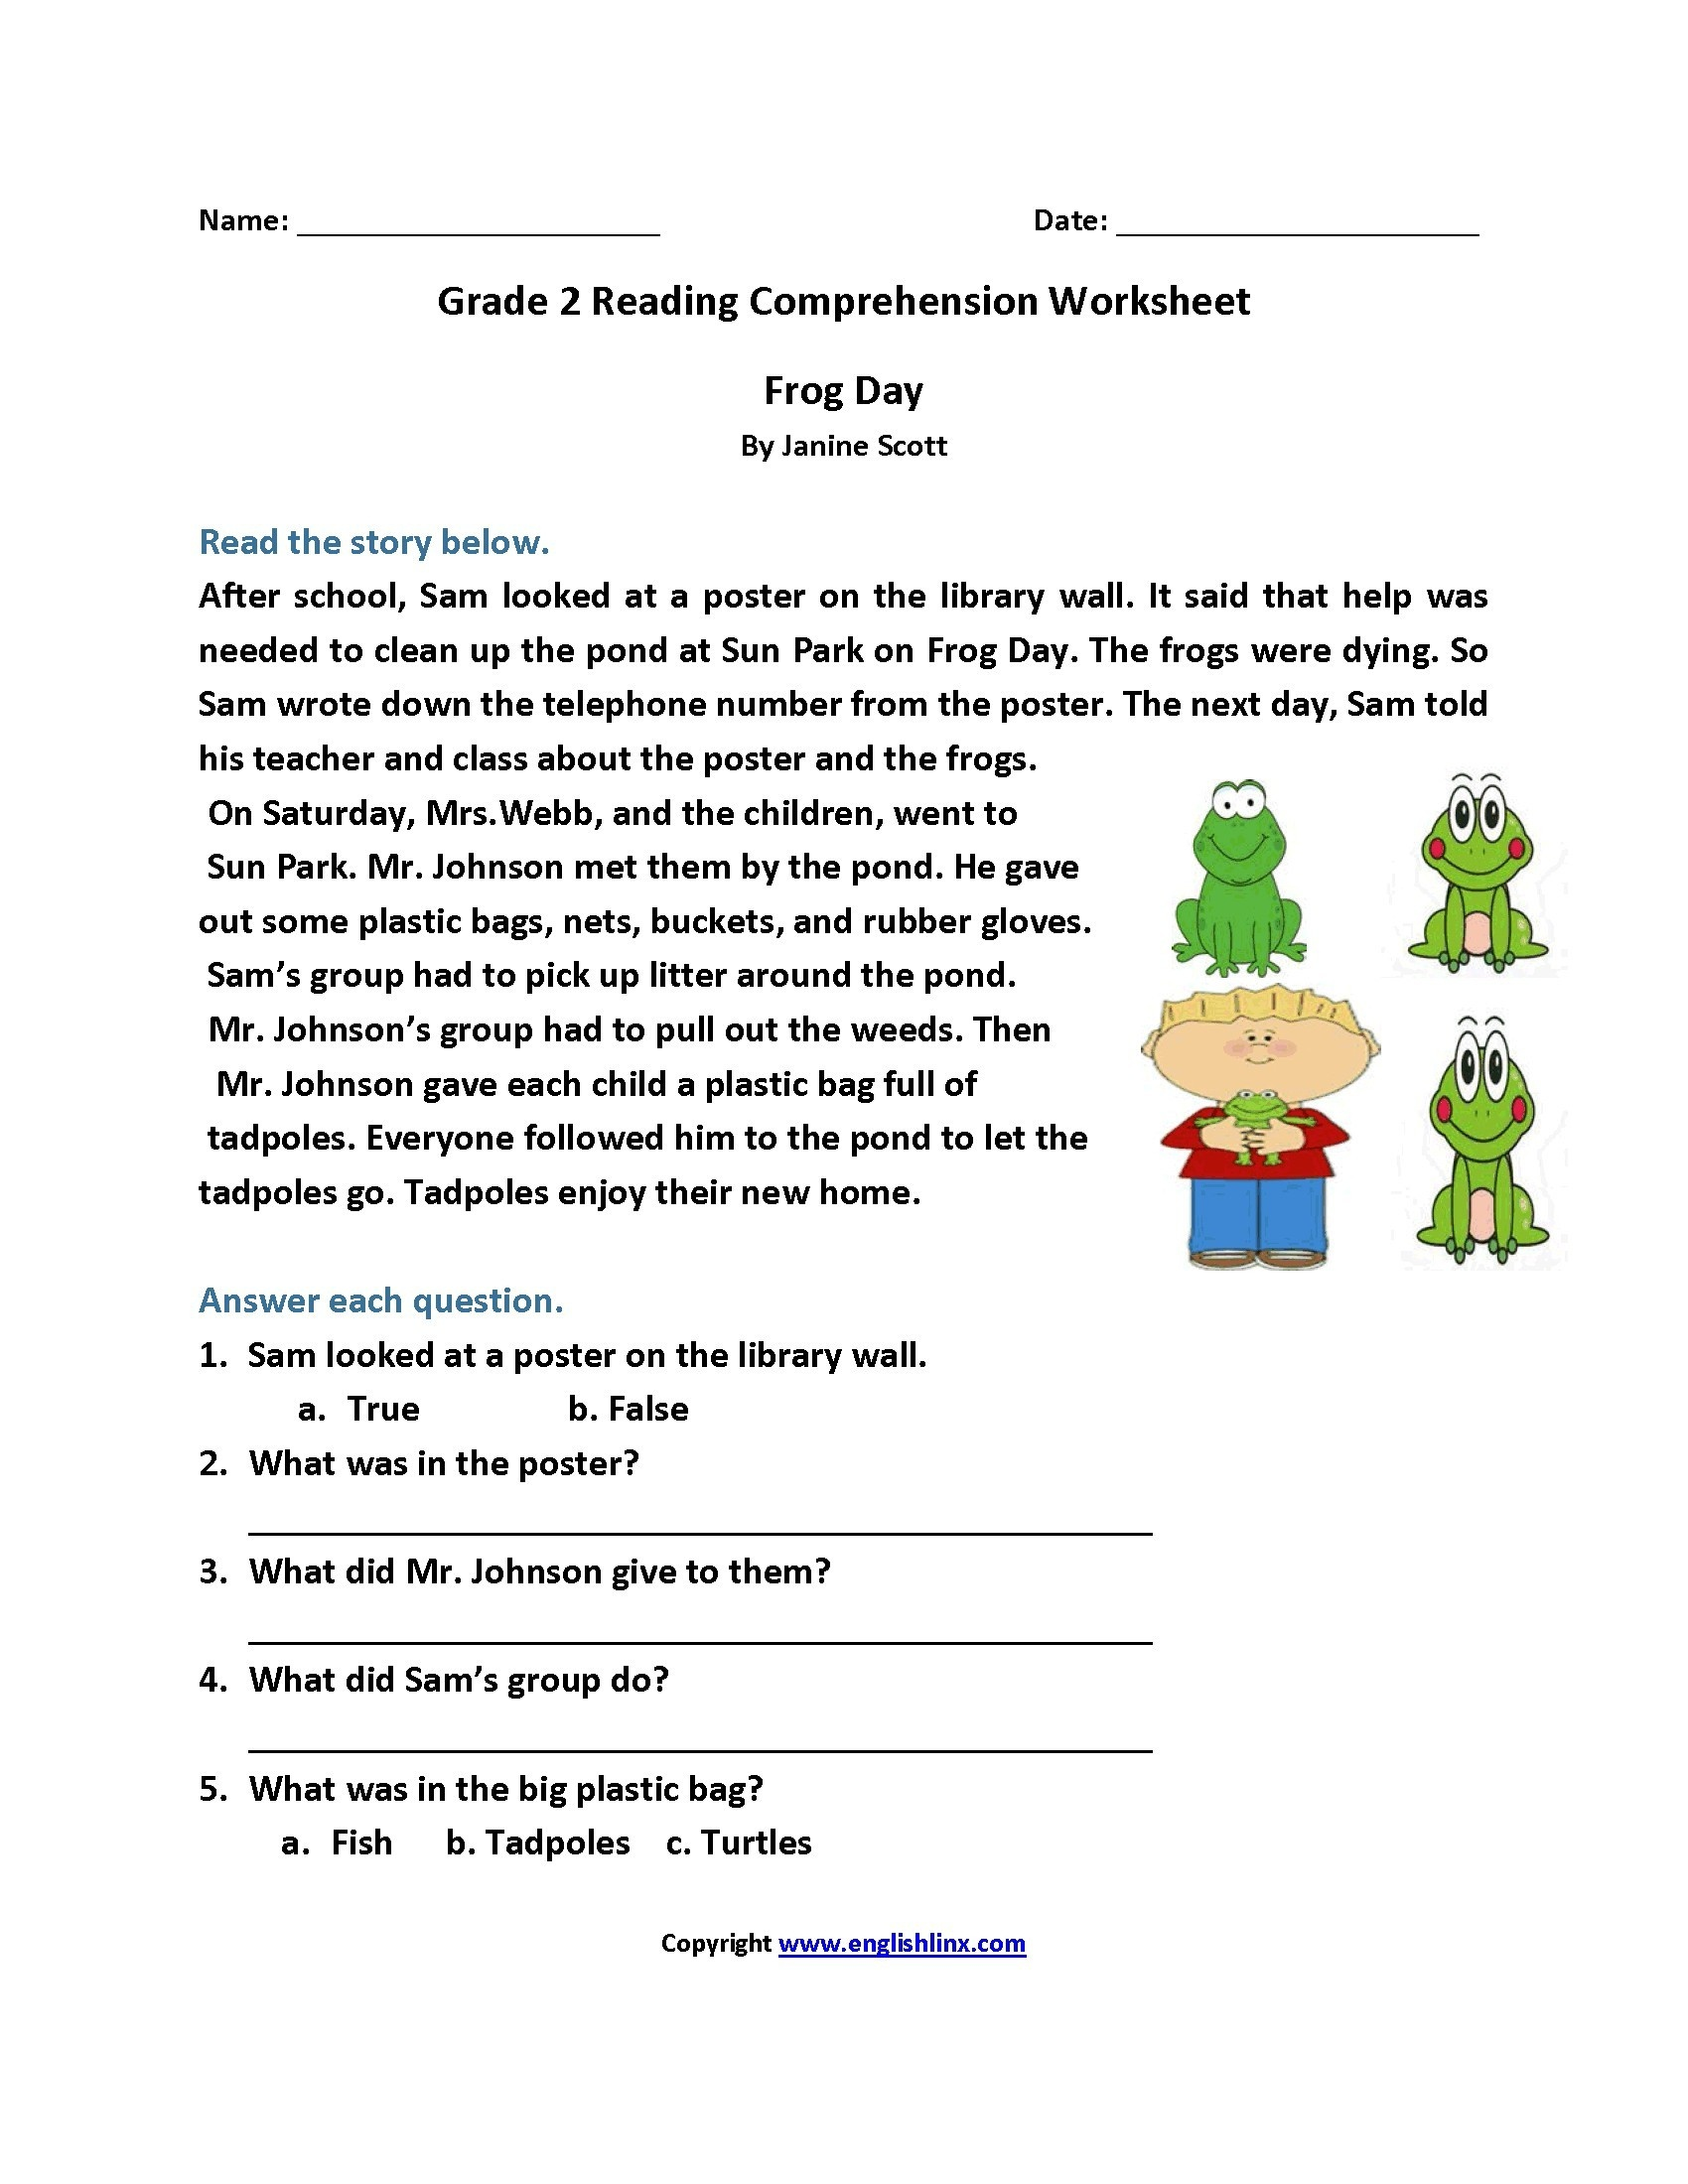 Worksheet : Free Printable Short Stories With Comprehension - Free Printable Short Stories For 4Th Graders